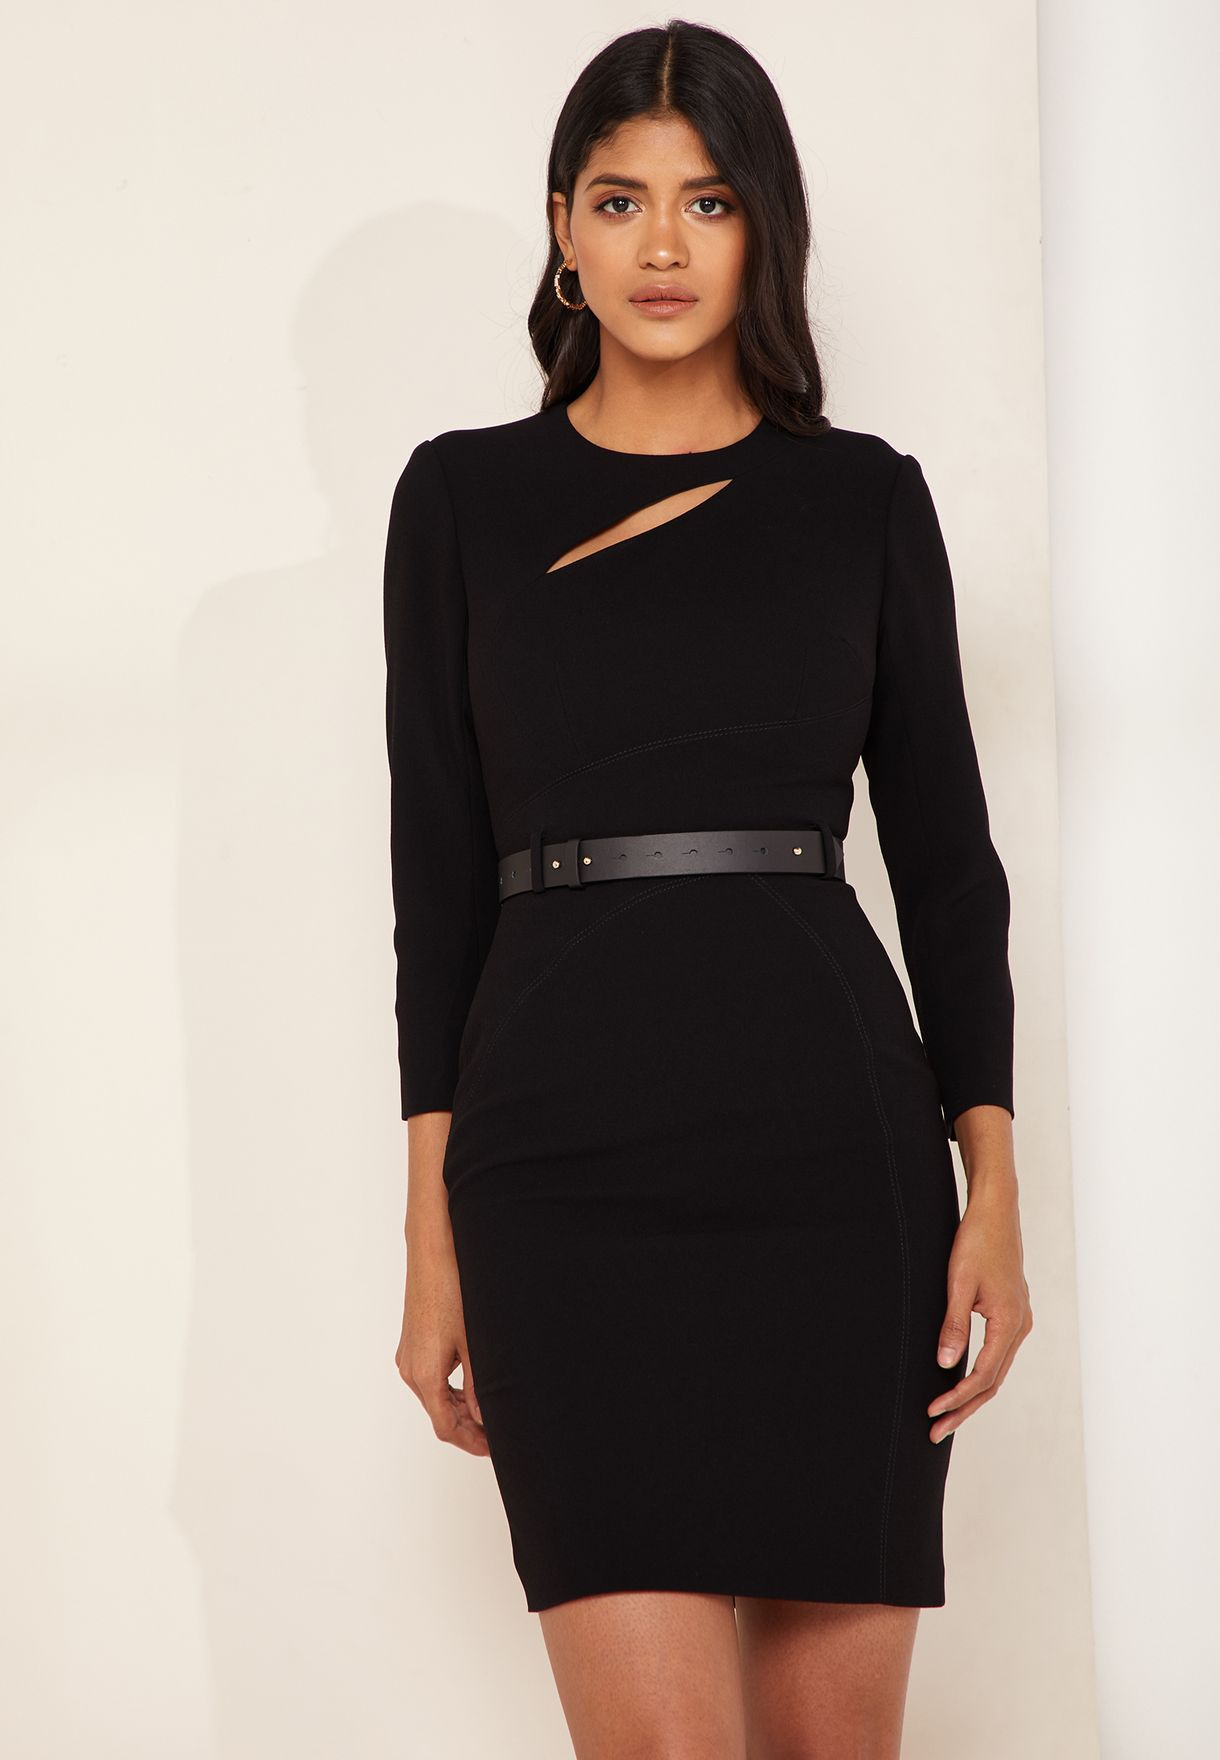 821bf1c3c4 Shop Karen Millen black Belted Cut Out Pencil Dress DE040 for Women ...